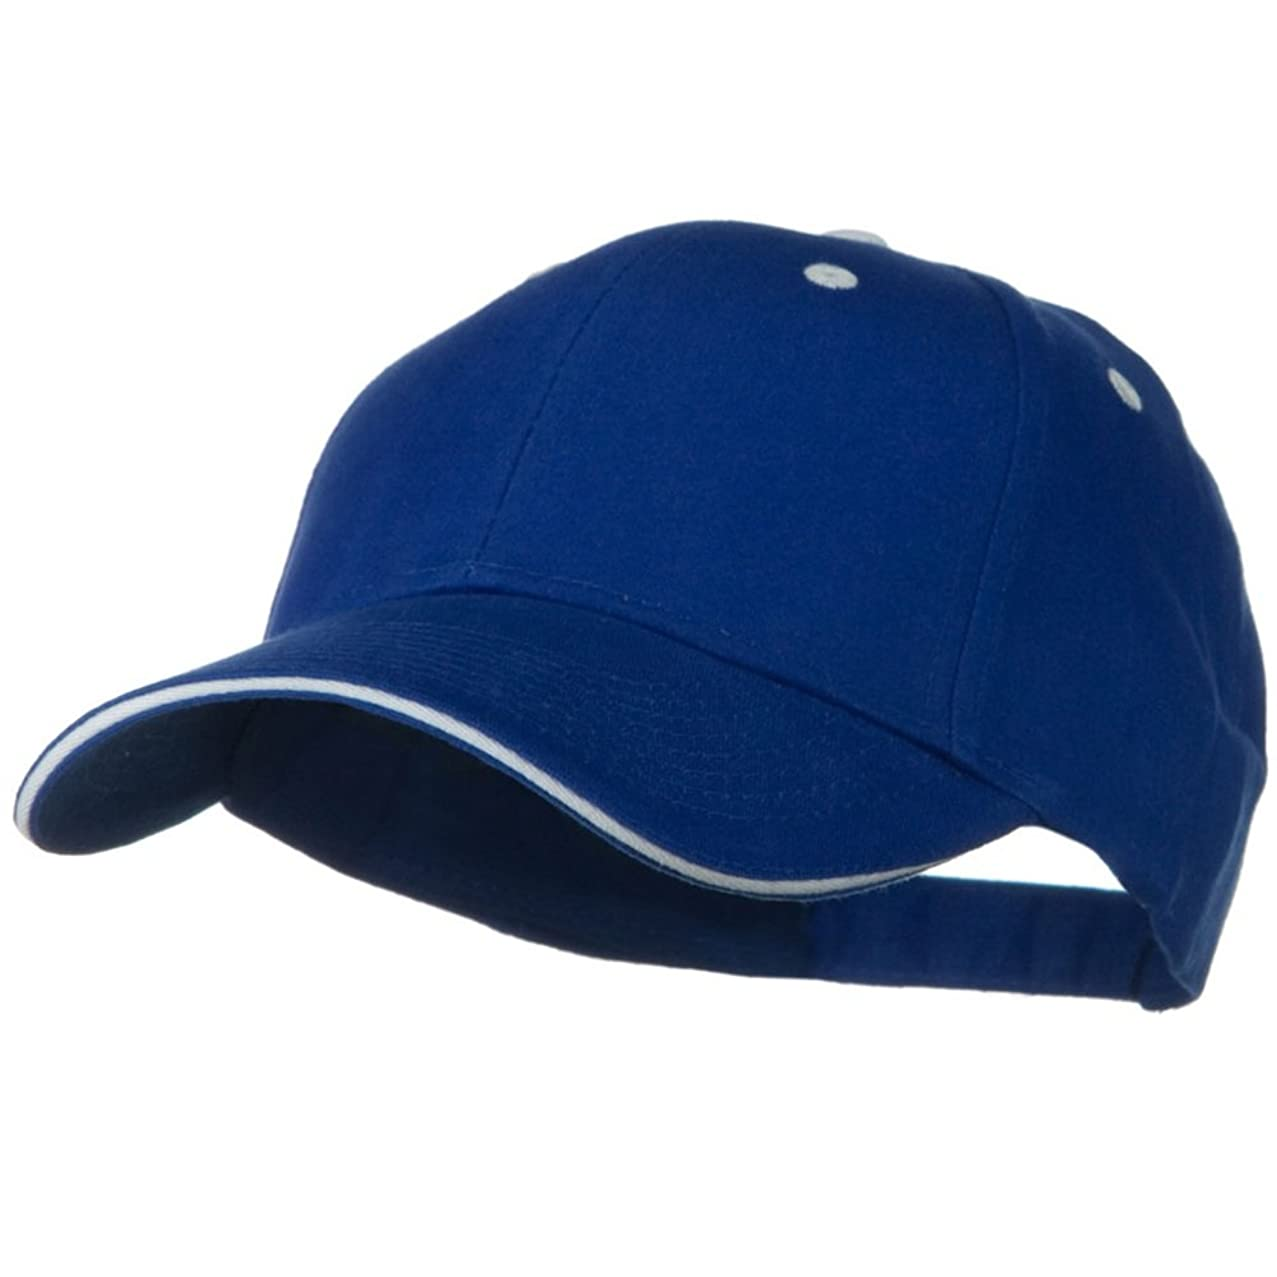 OTTO Solid Brushed Twill Sandwich Visor Cap - Royal White